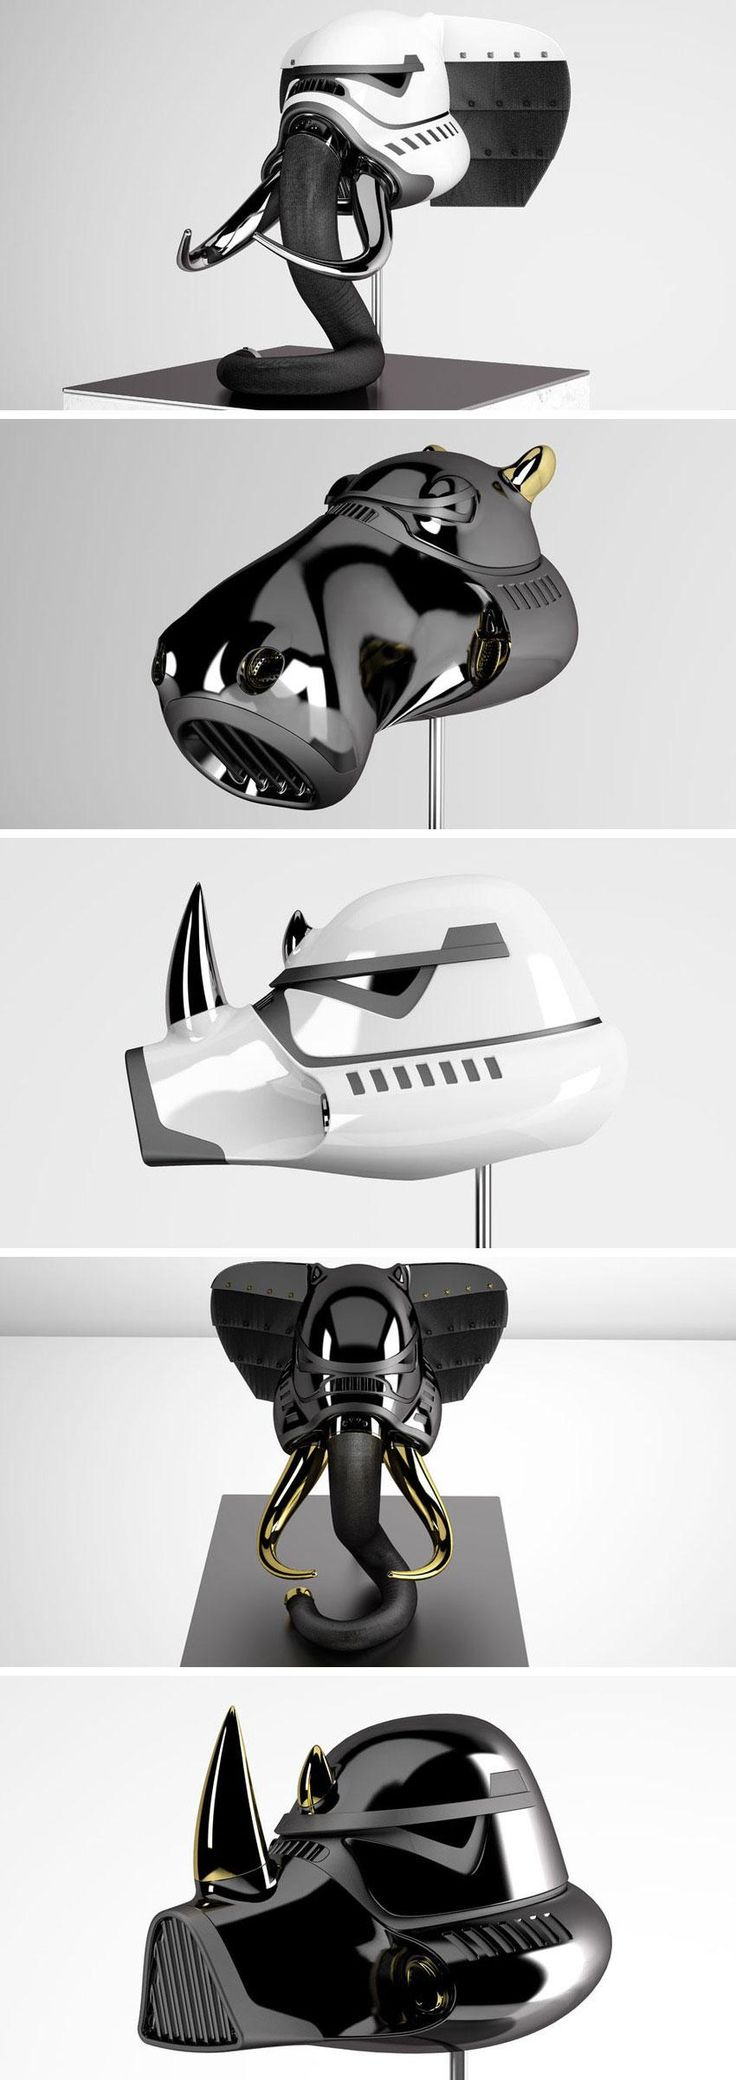 New York-based designer Blank William created an amazing series of Star Wars-themed helmets shaped like animal heads